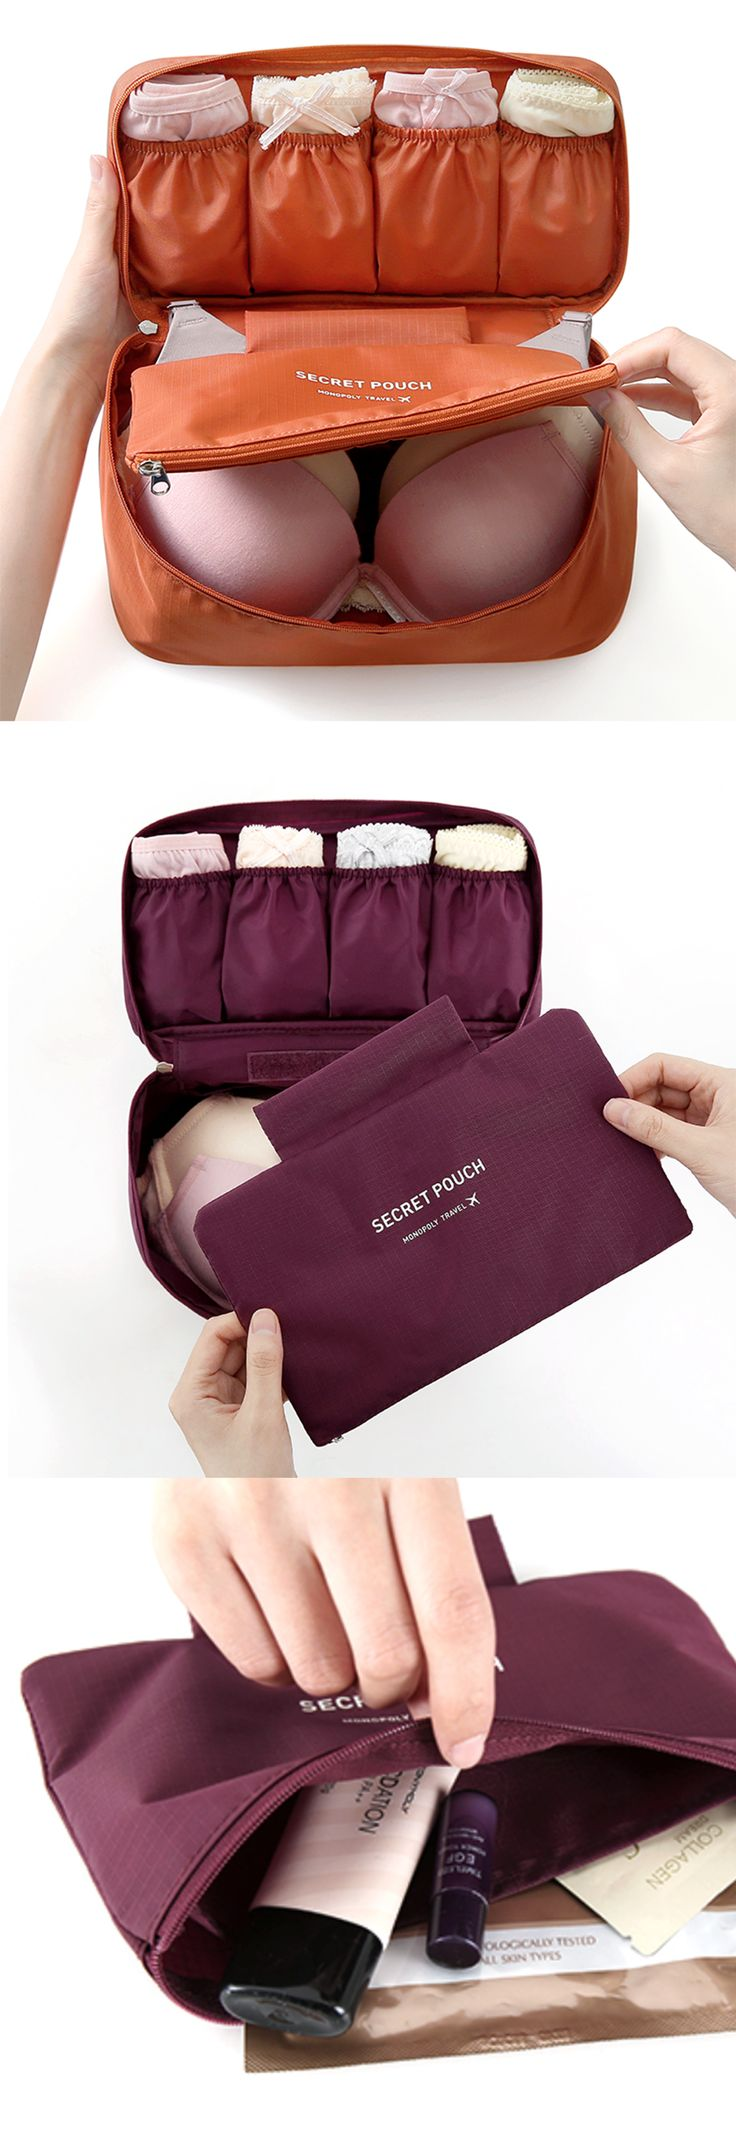 This pouch is designed to store 3-6 bras and 4-6 undies within the compartments. This is also super handy for traveling as I can pack all my essentials in the pouch and just toss it into the luggage.